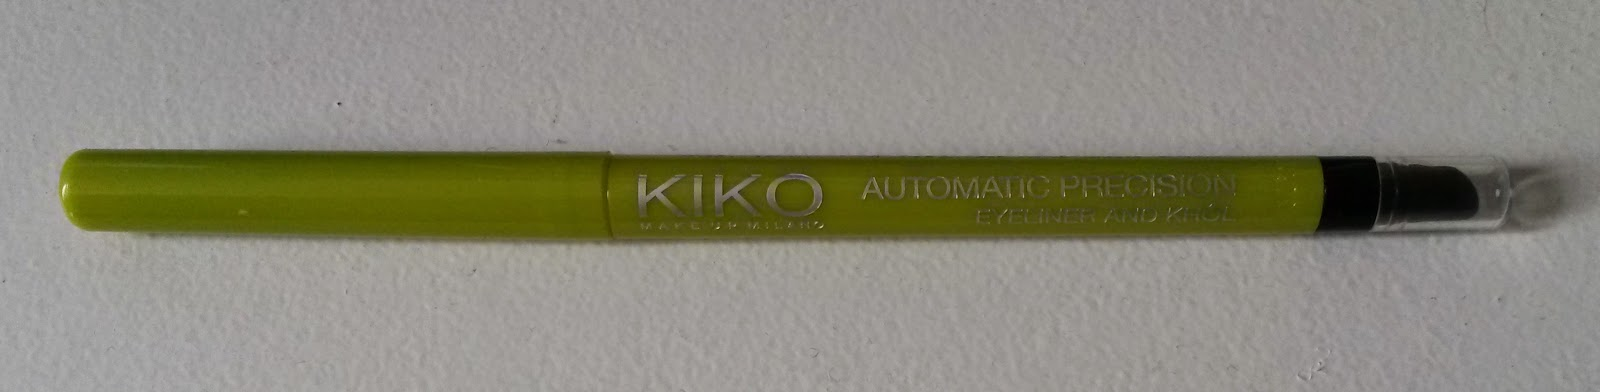 Automatic Precision Eyeliner and Khôl KIKO